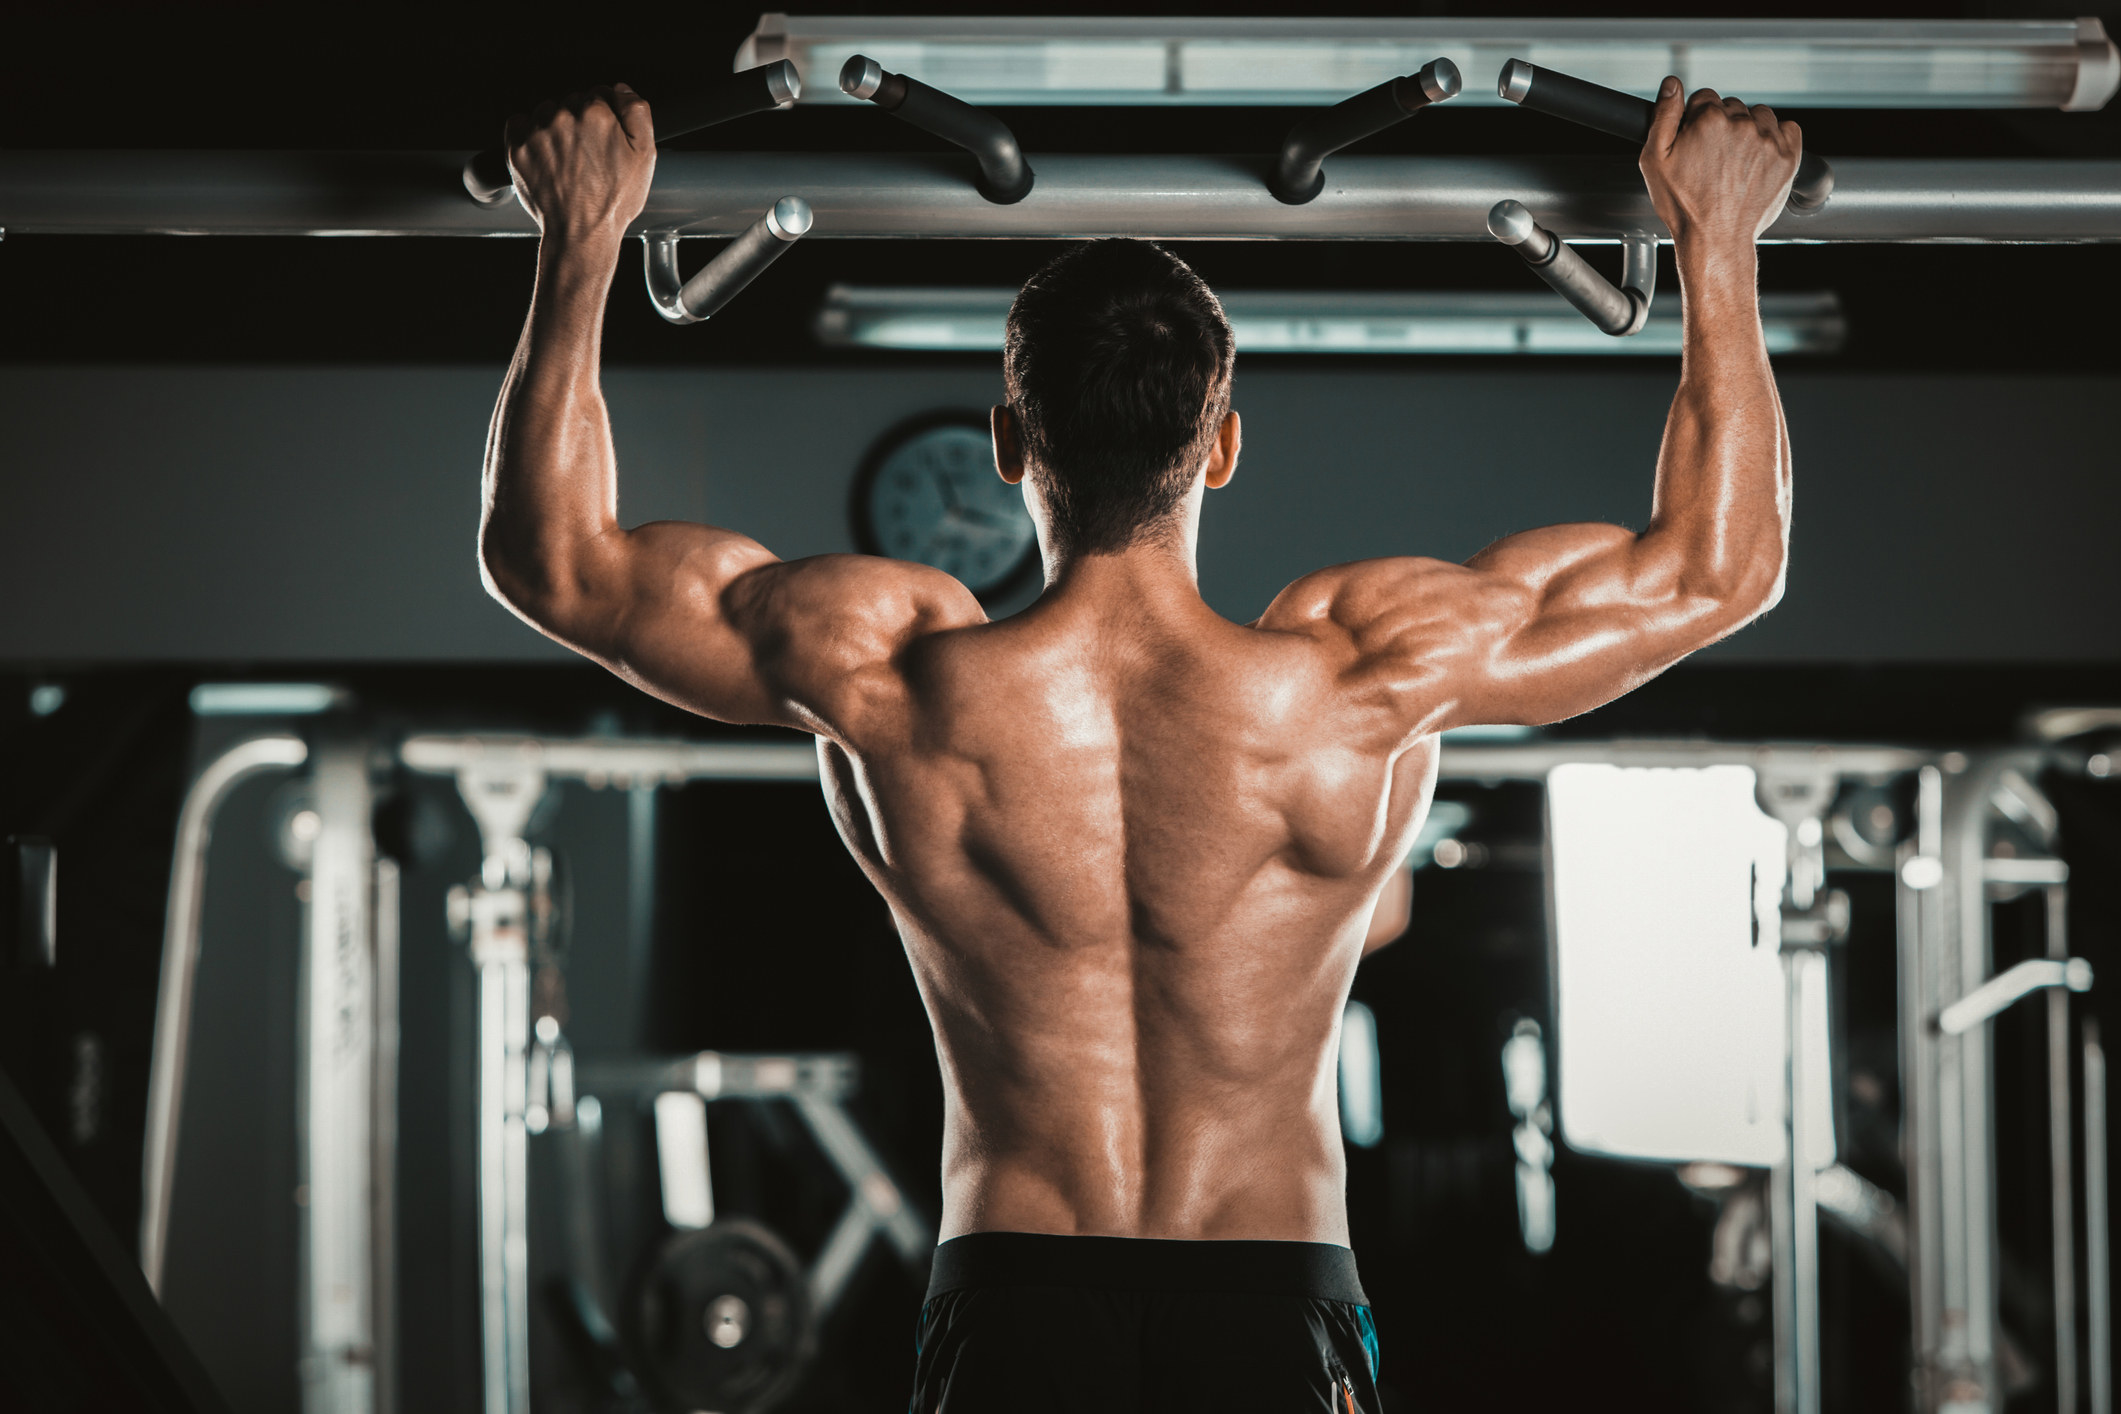 Muscular fitness male model pulling up on horizontal bar in a gym